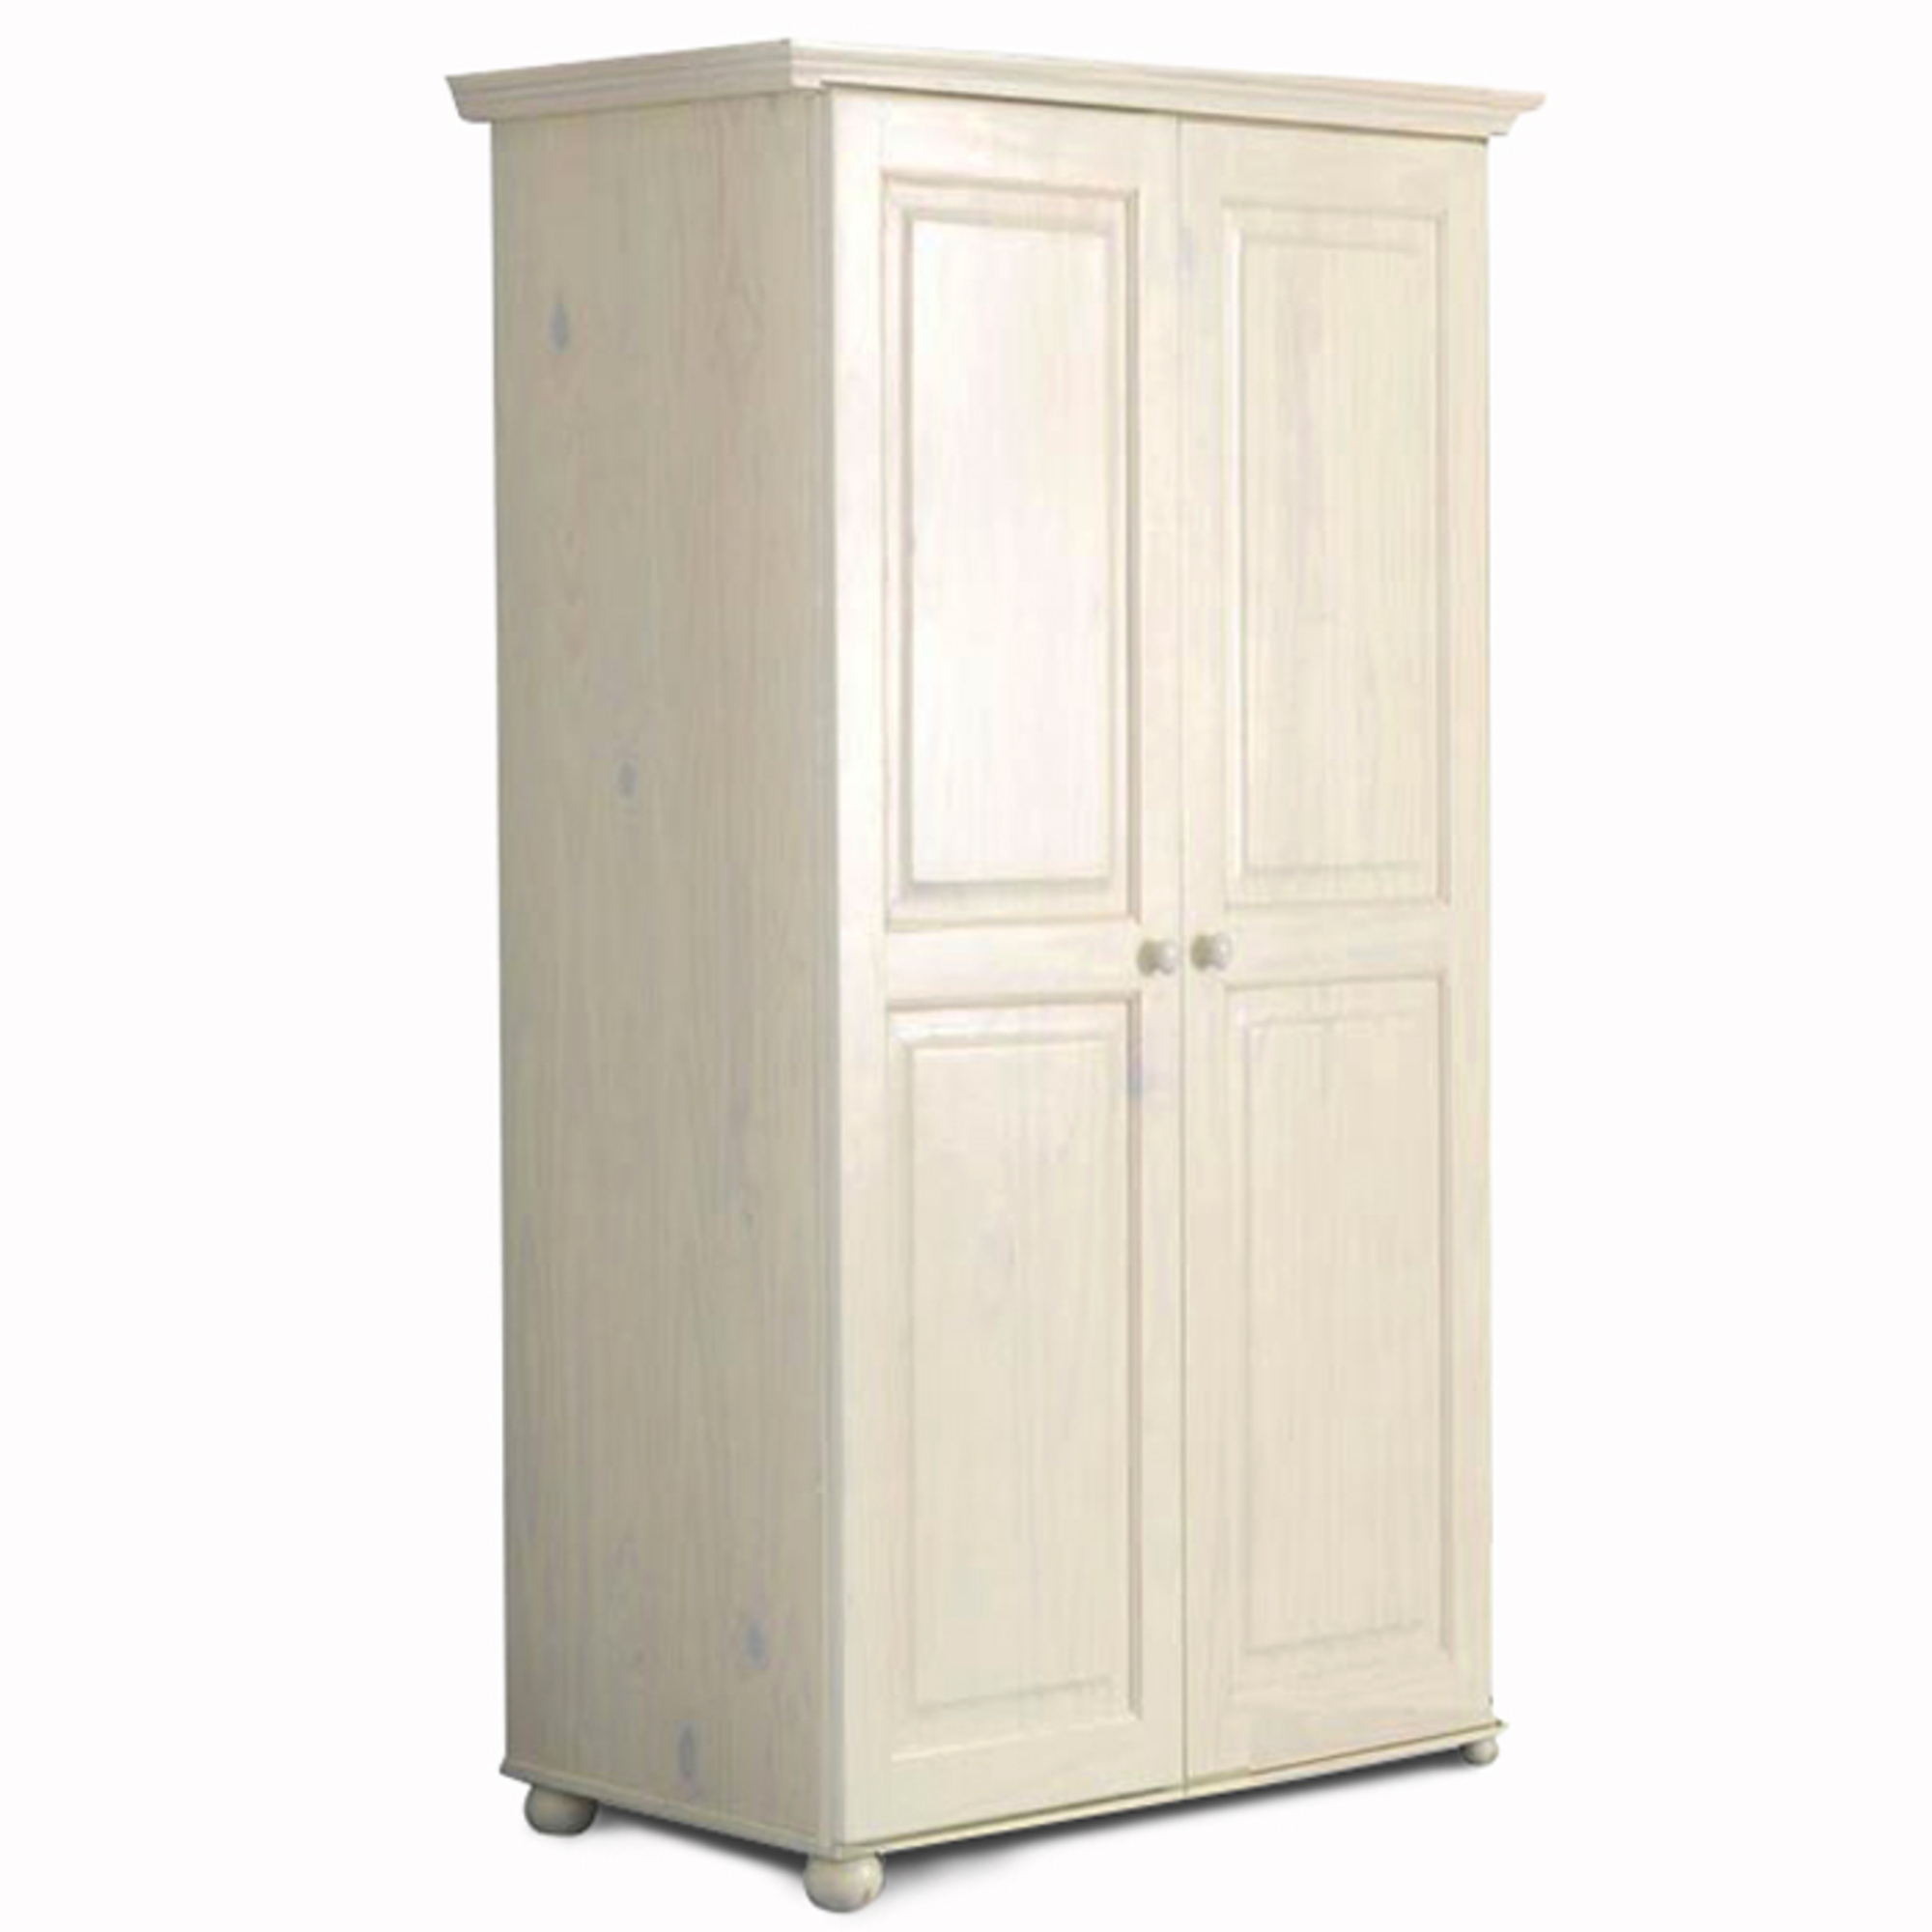 armoire 2 portes hauteur 180 cm annecy blanc. Black Bedroom Furniture Sets. Home Design Ideas